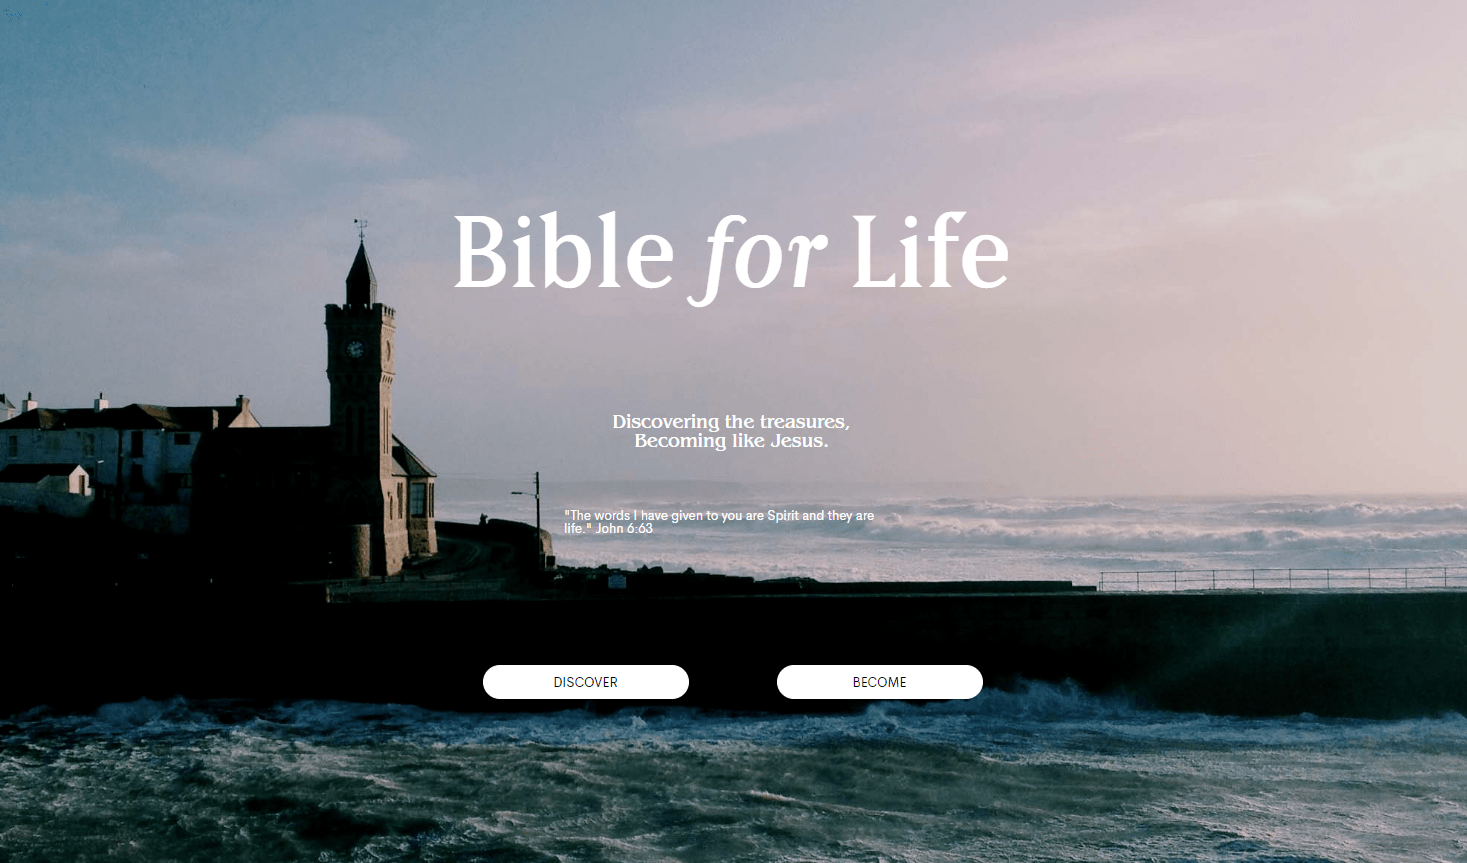 Bible for Life